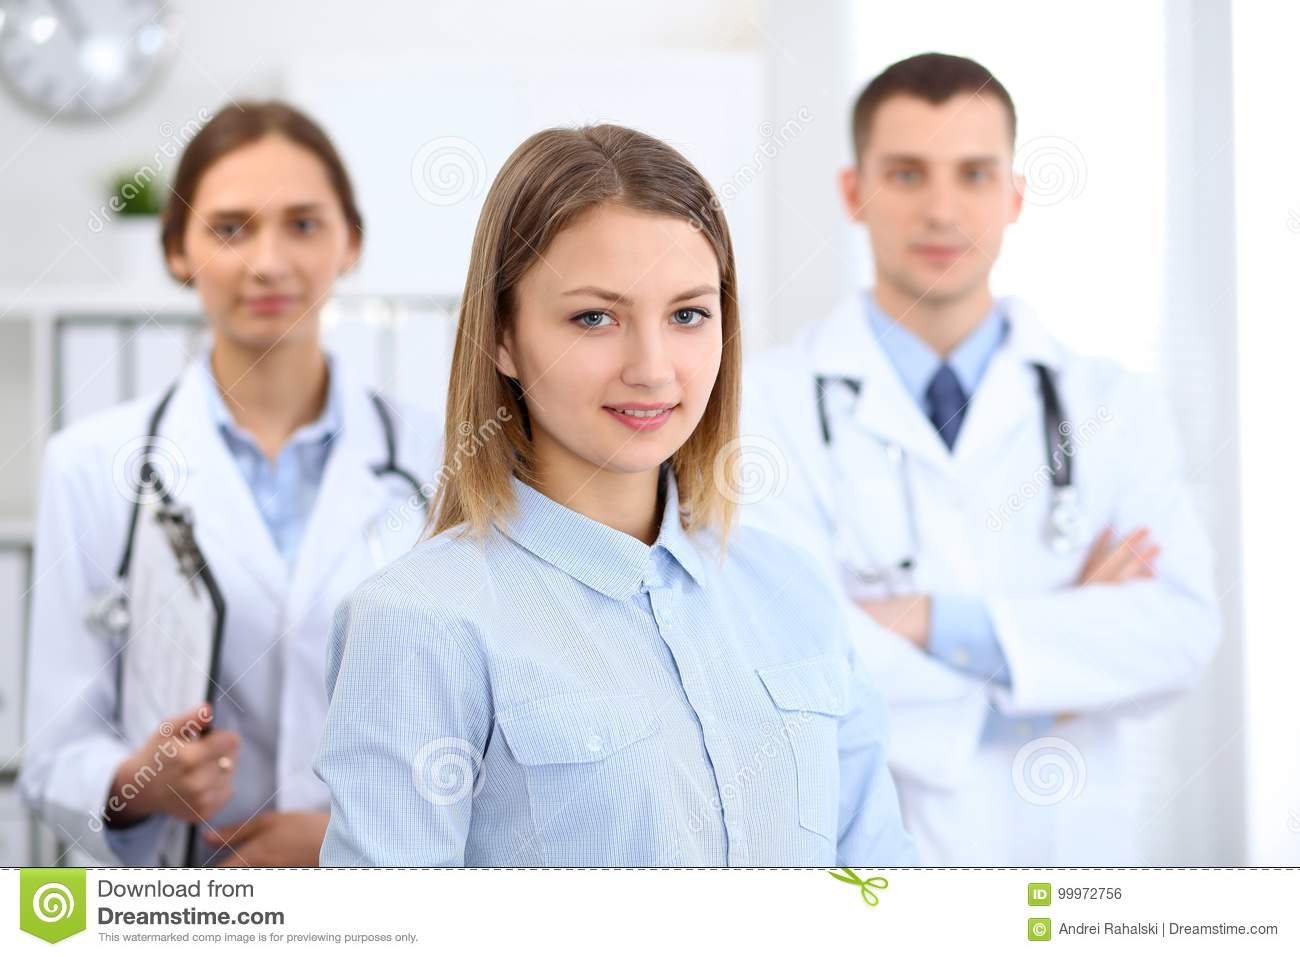 Happy smiling female patient with two cheerful doctors in the background. Medical and health care concept